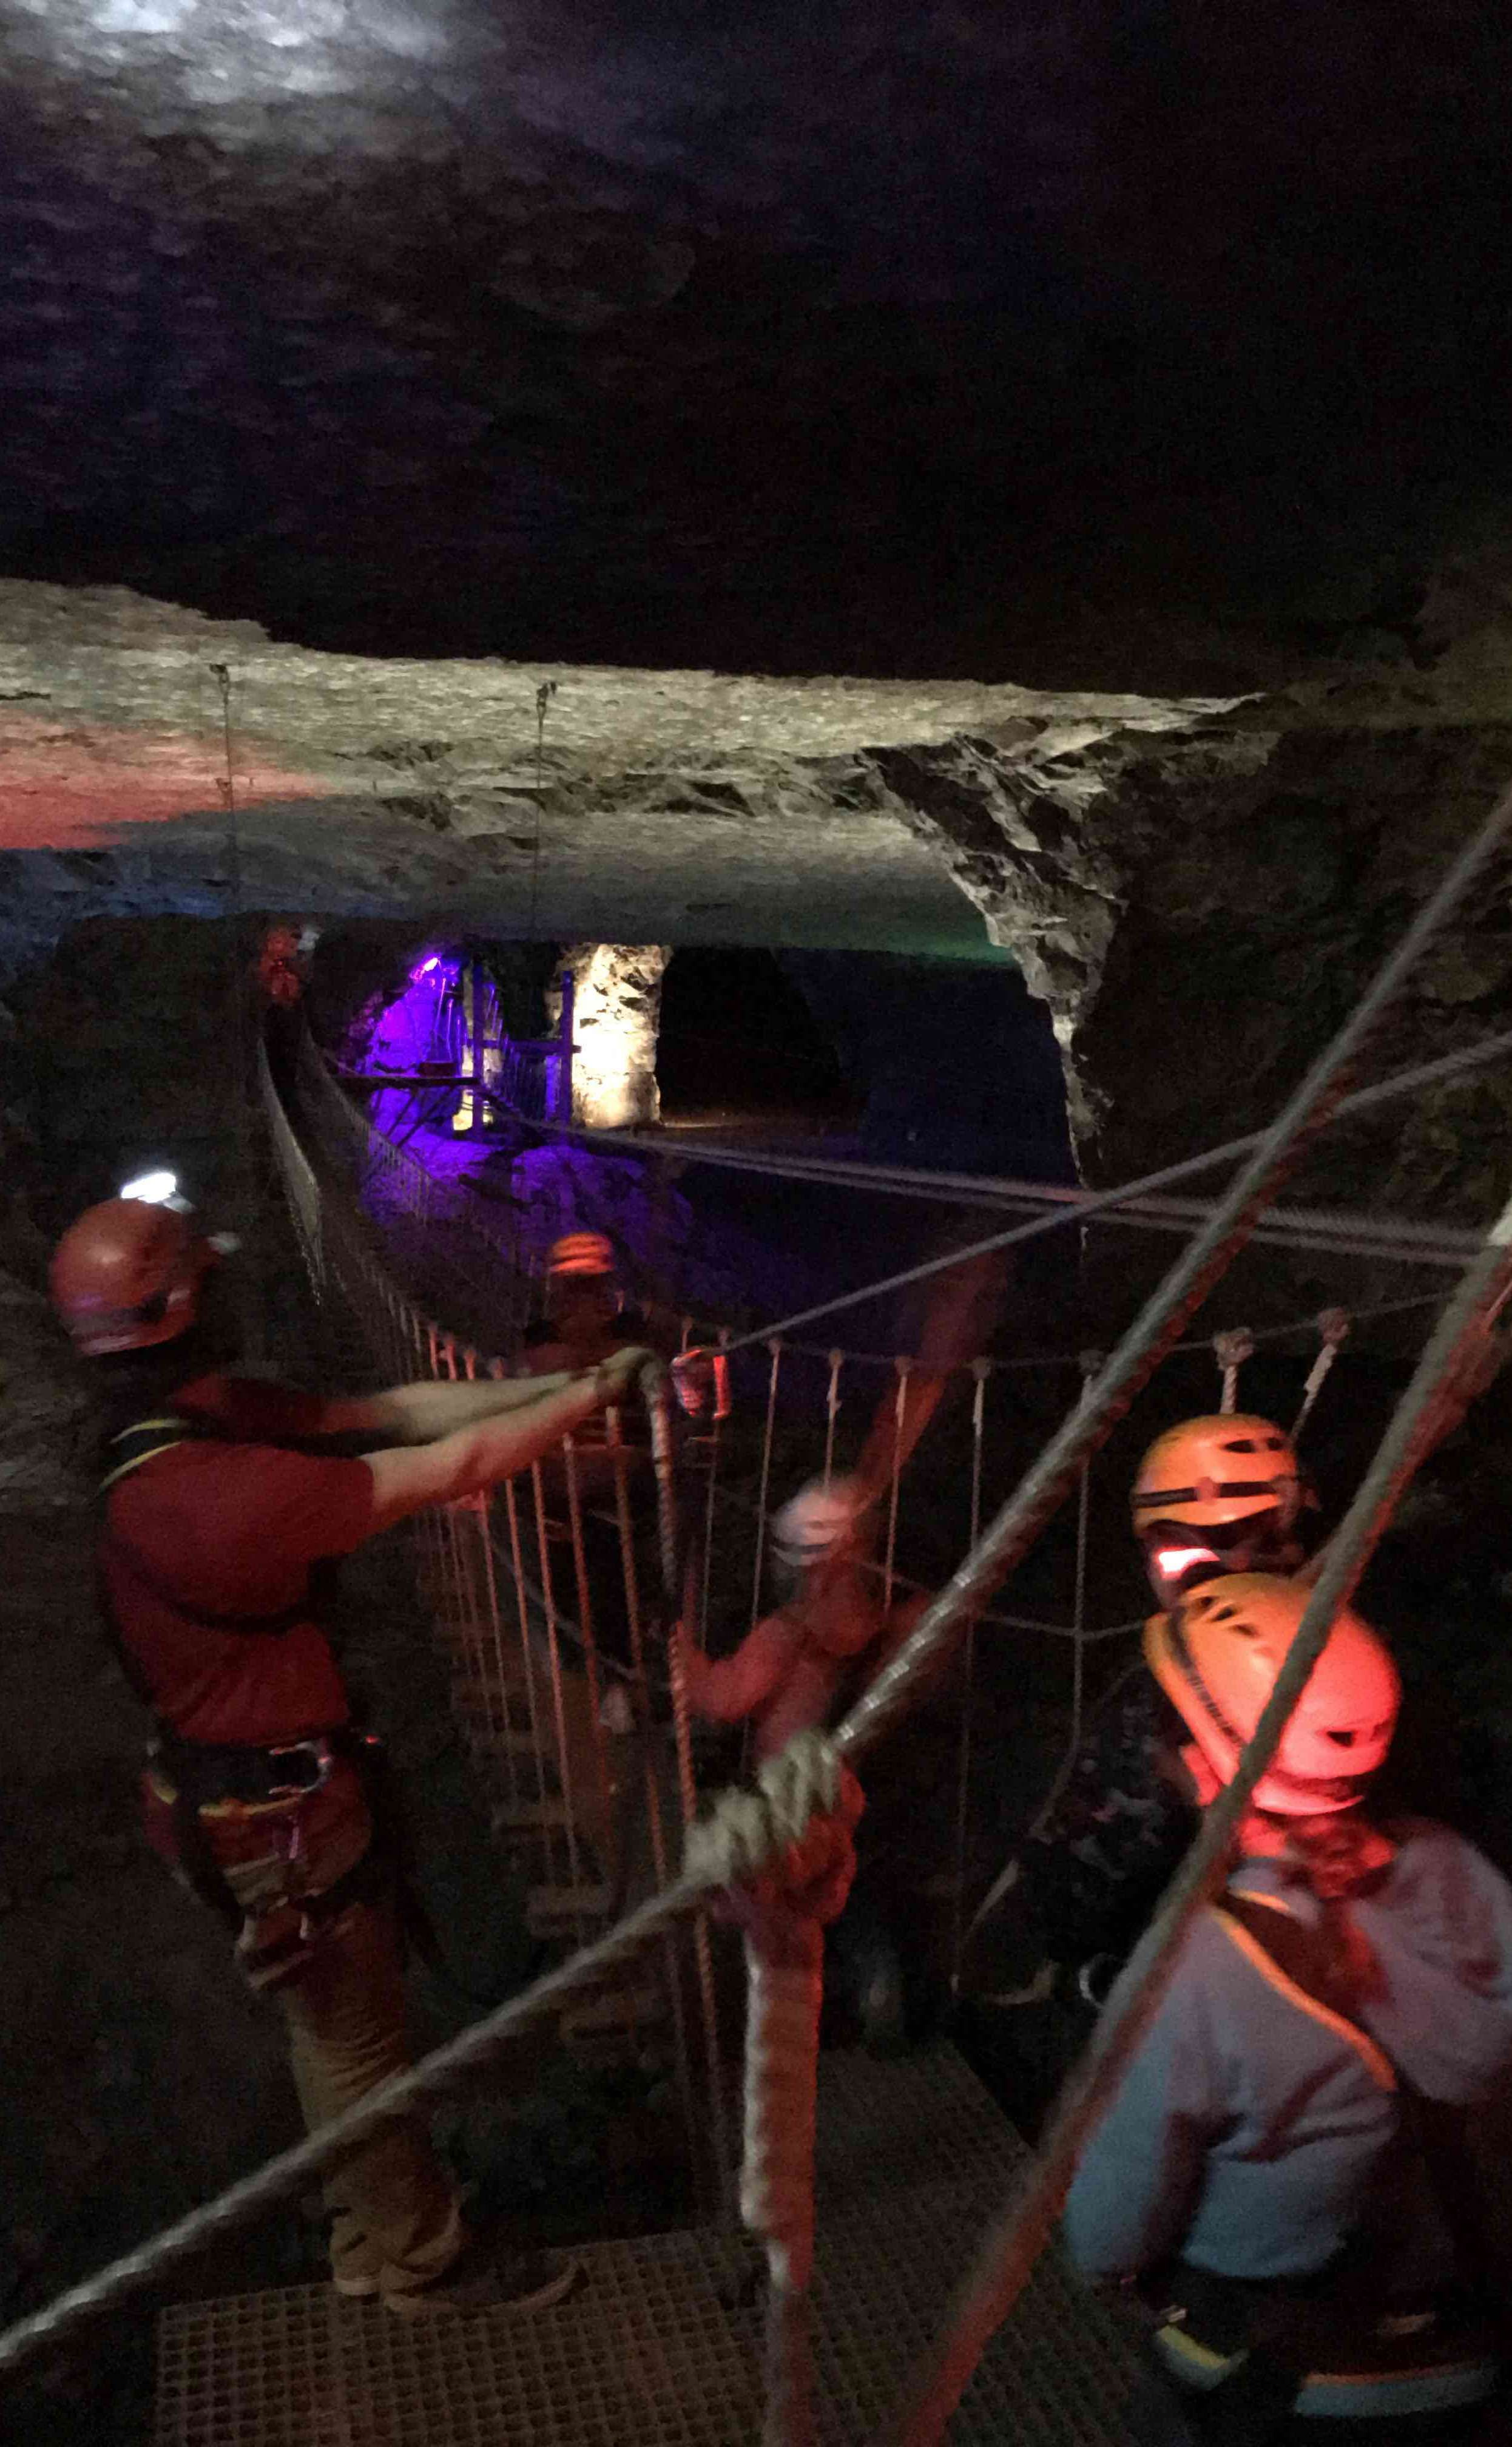 Louisville Mega Cavern Travel Vacation Ideas Road Trip Places To Visit Louisville Ky Wil Road Trip Places Louisville Mega Cavern Adventure Sports